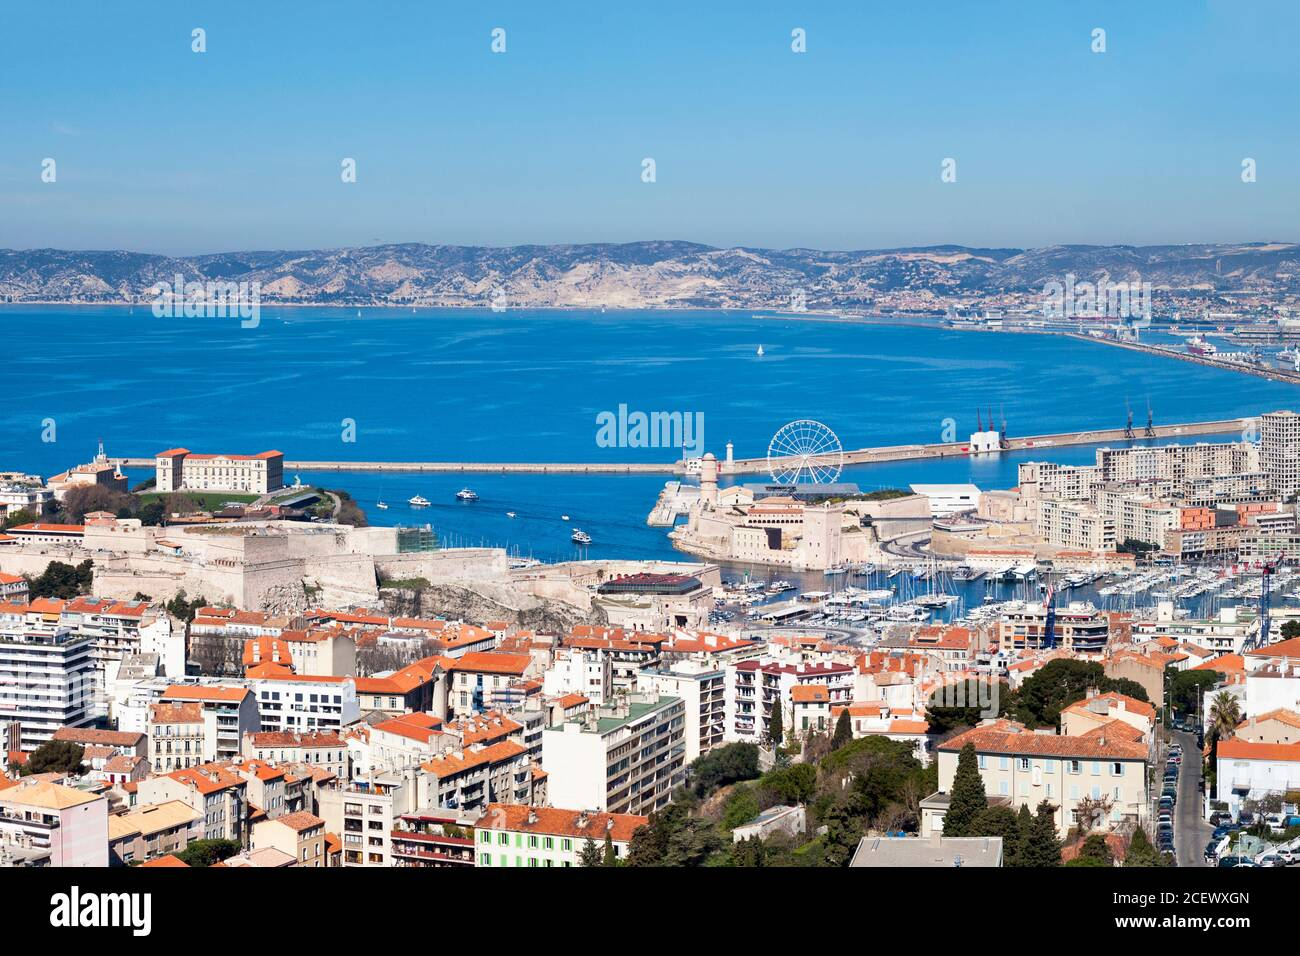 Aerial view of Vieux Port of Marseille with the Fort Saint-Jean, the Palais Pharo and the Fort Saint-Nicolas. Stock Photo